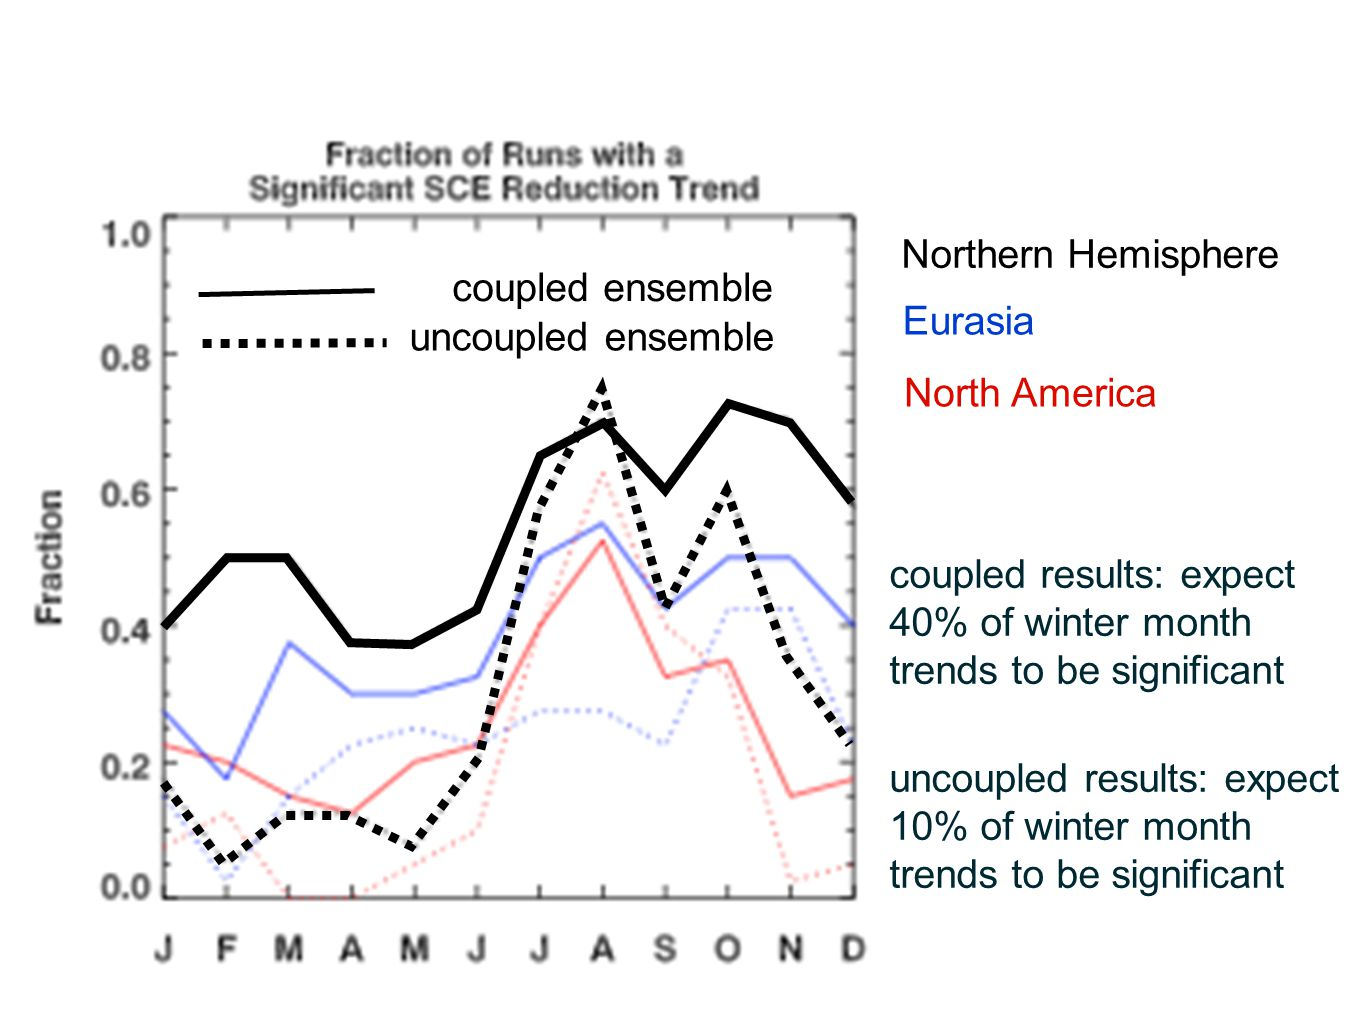 Northern Hemisphere coupled ensemble. Eurasia. uncoupled ensemble. North America.